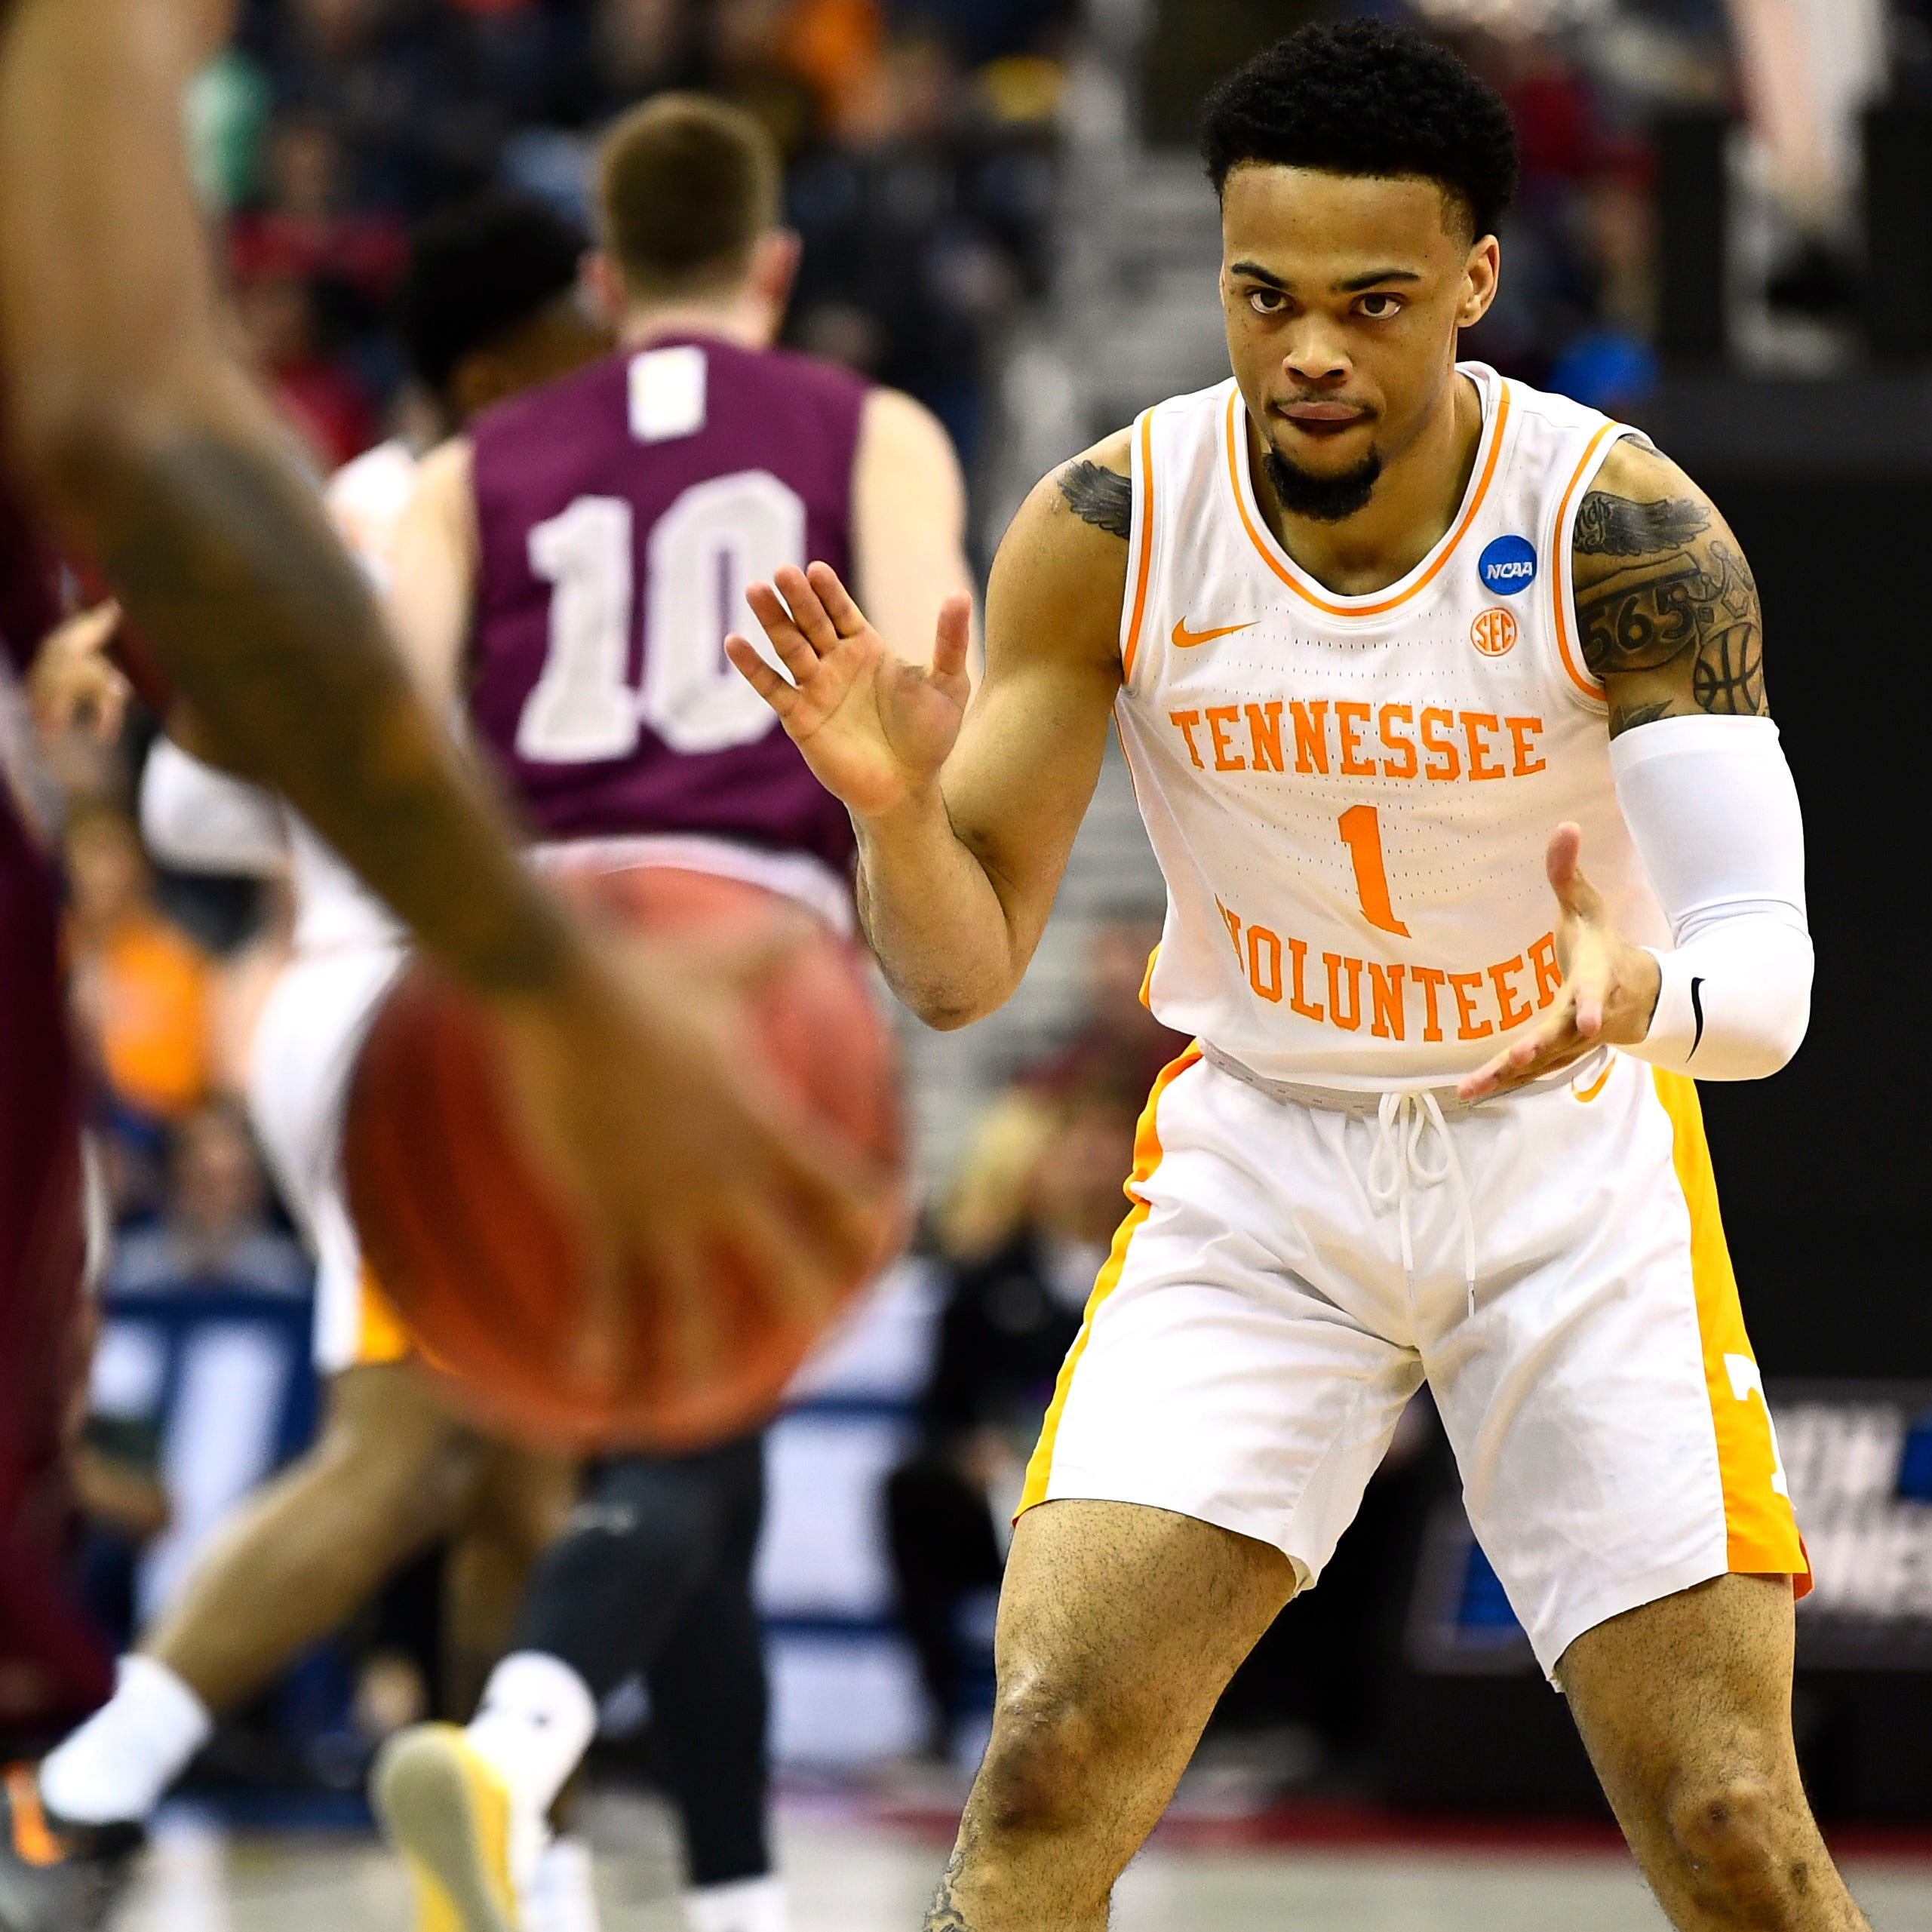 Tennessee basketball survives upset scare from No. 15 seed Colgate